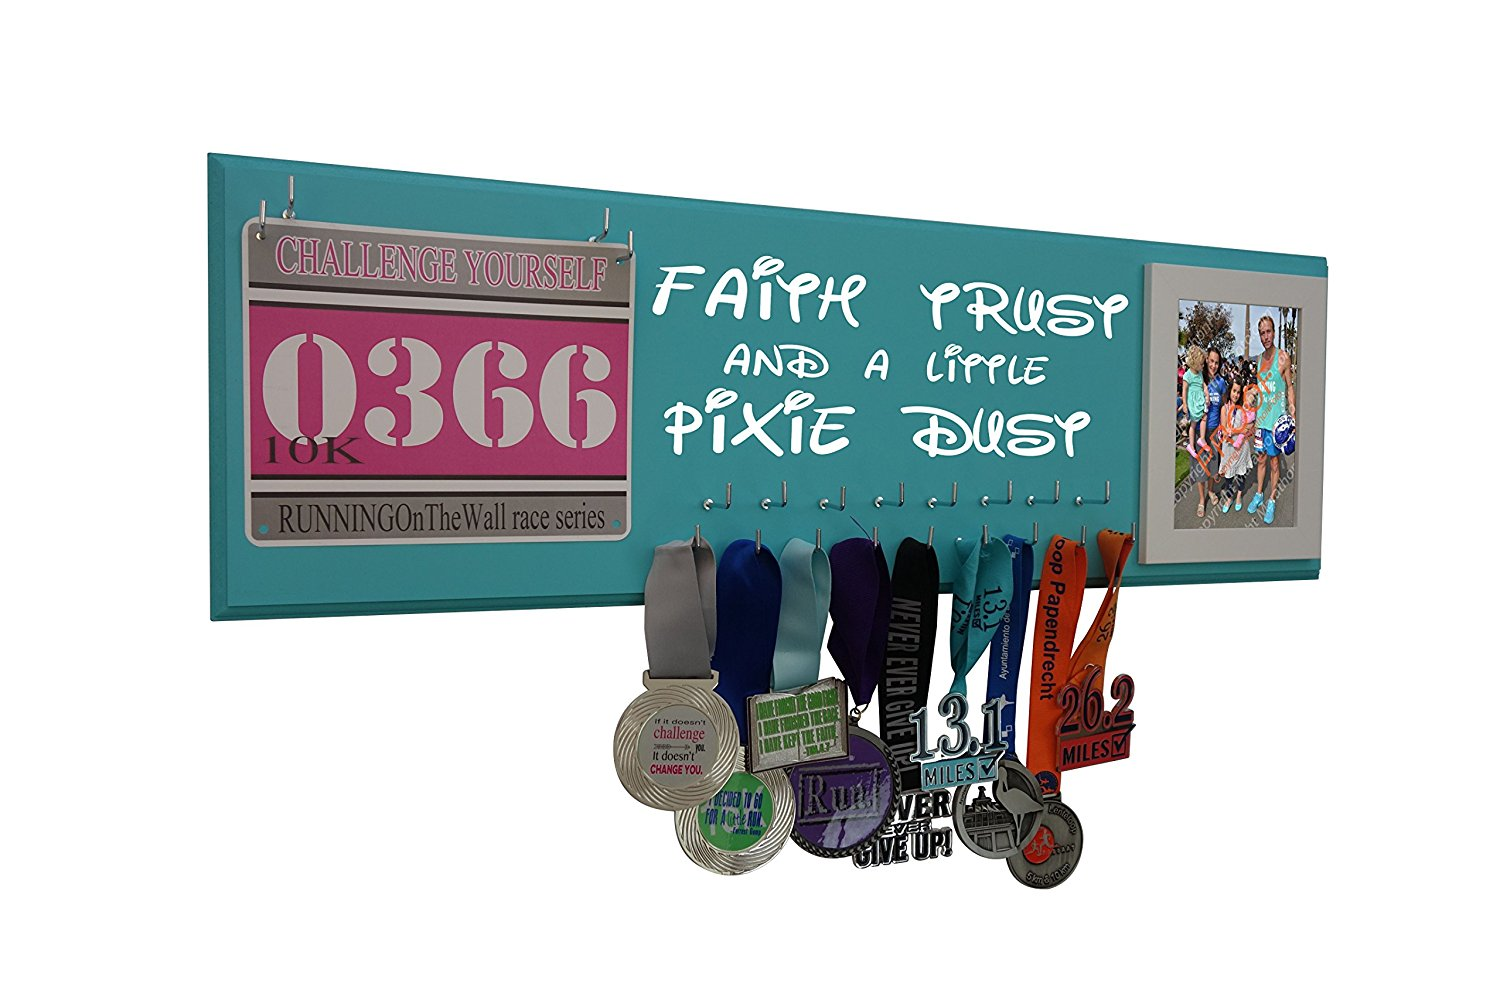 "RunningontheWall - Running medal hanger Disney, Disney medal display, Medal holders hangers for runners, Disney medal rack, Disney race medal hanger "" FAITH TRUST AND PIXIE DUST"" Picture frame"